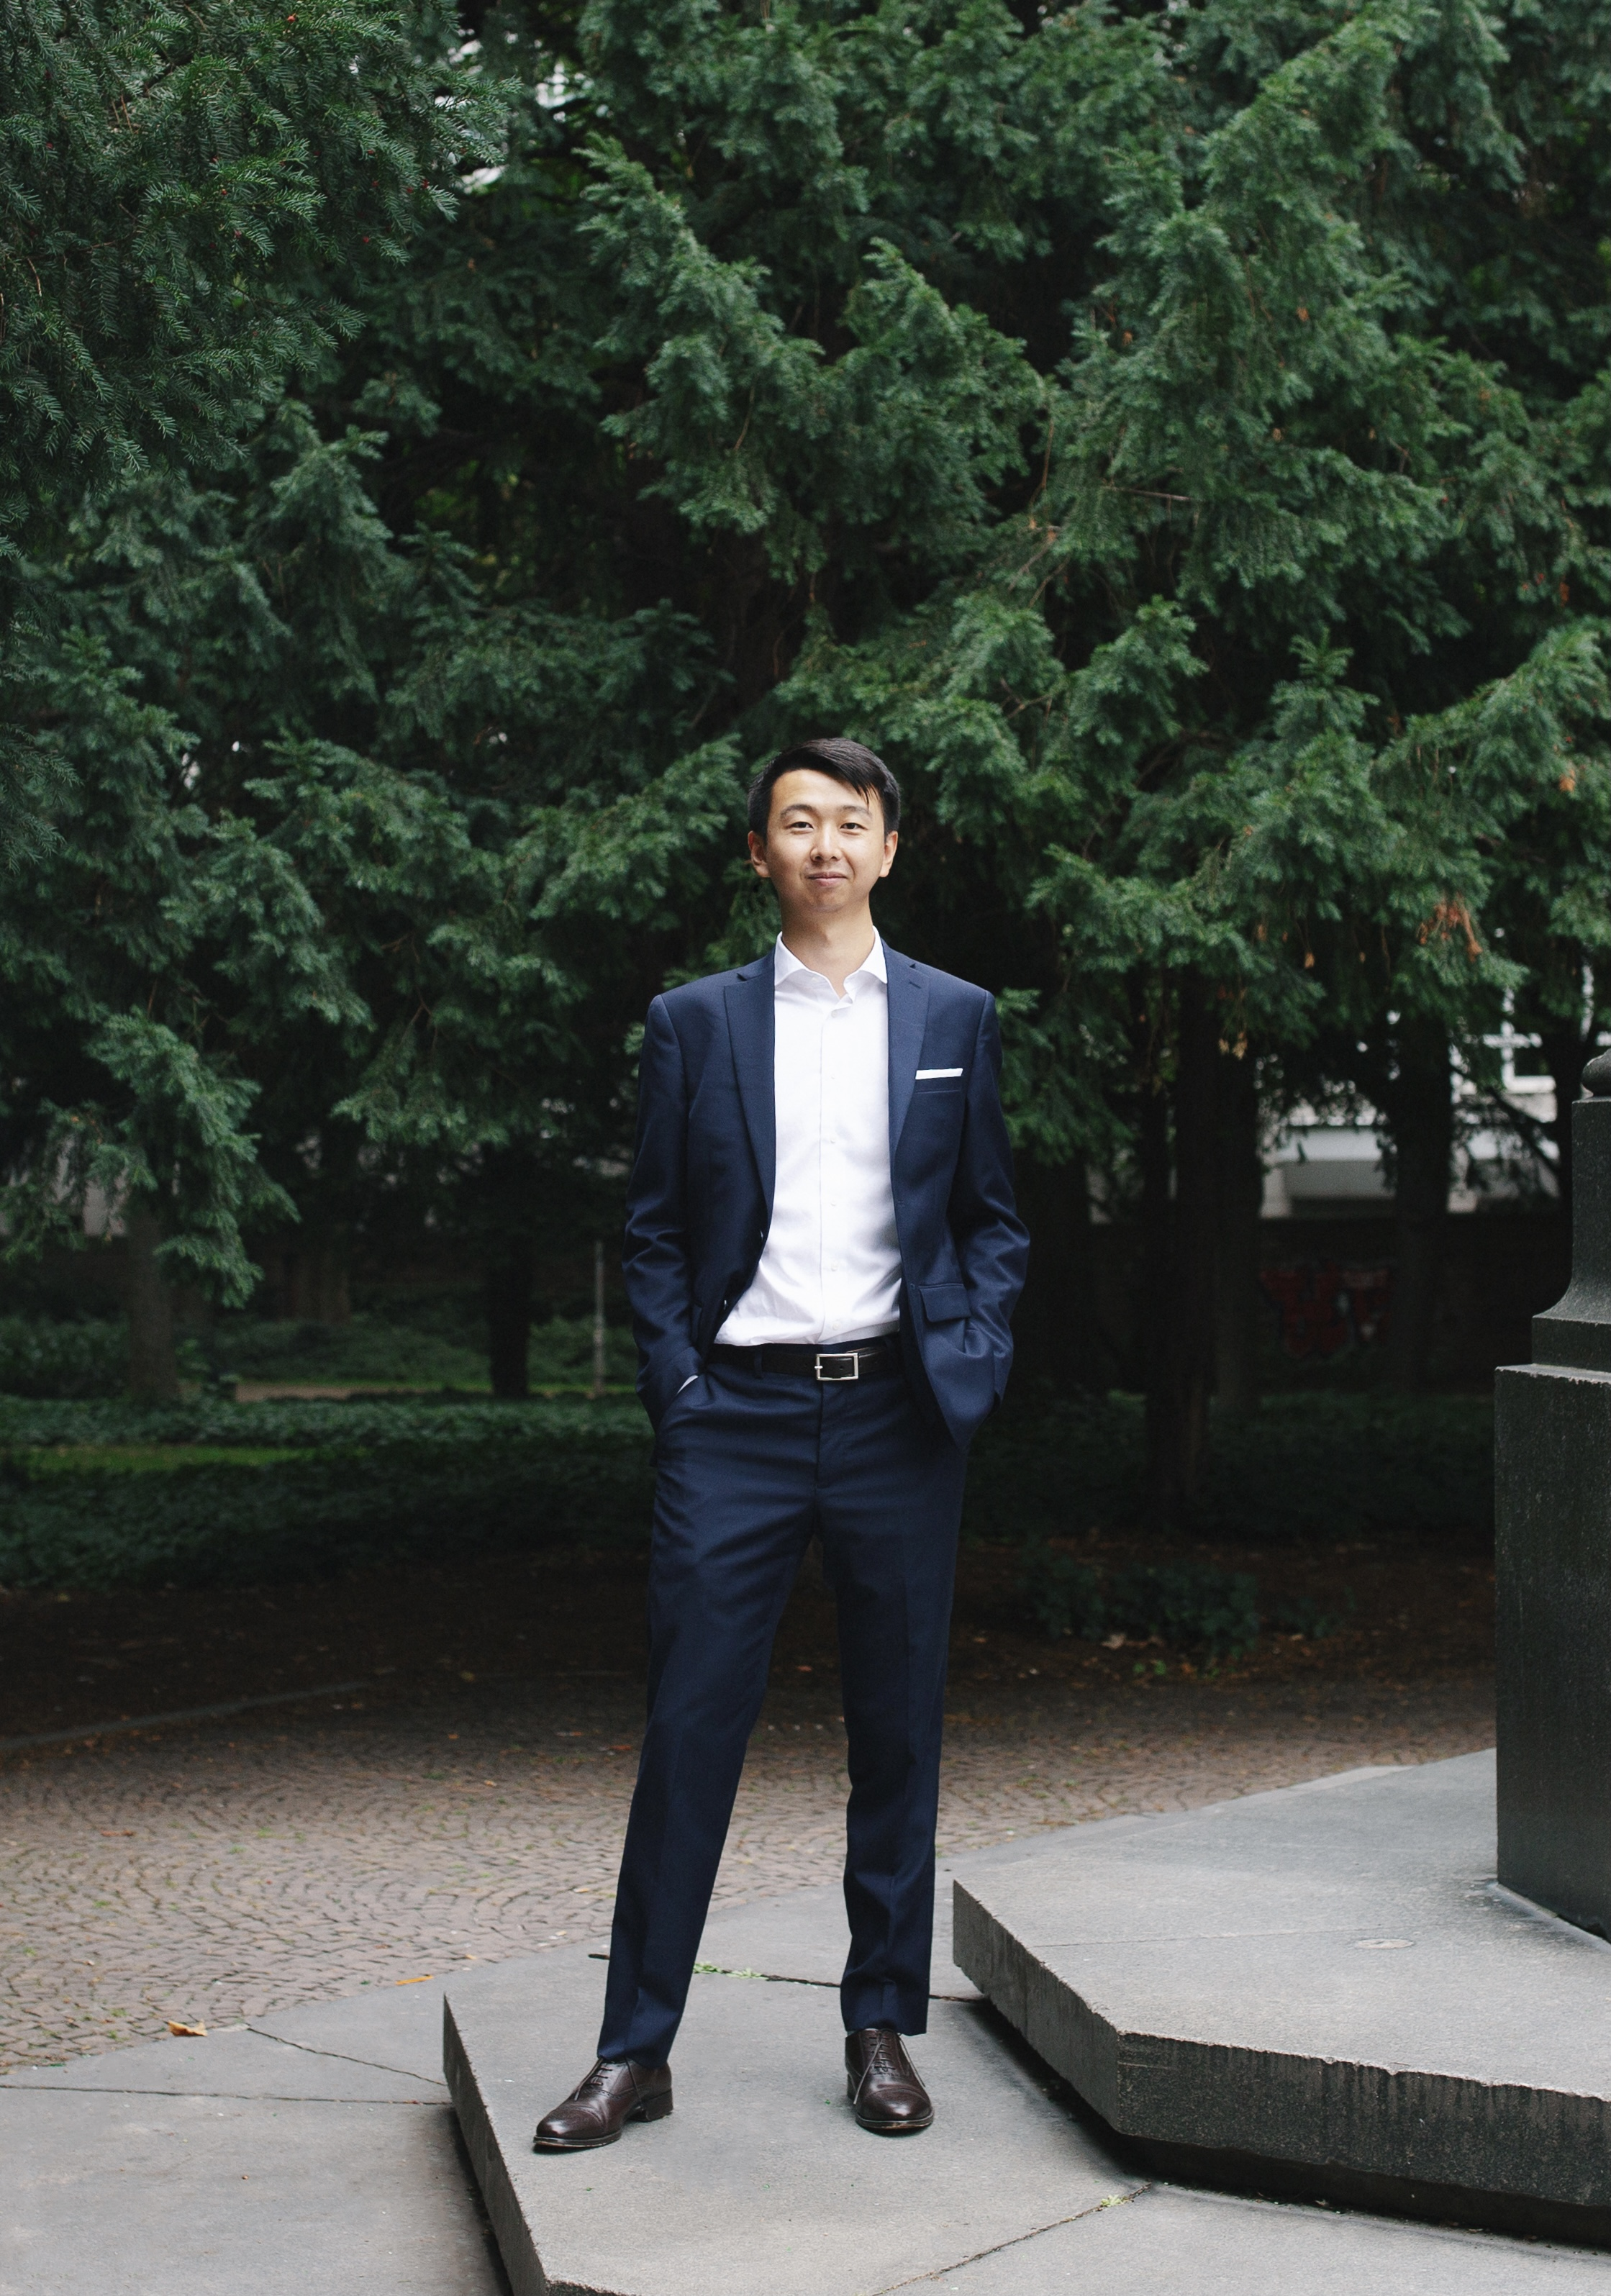 Kai Chen, CEMS alumnus and Fund Manager at True North Impact Investments in Toronto.